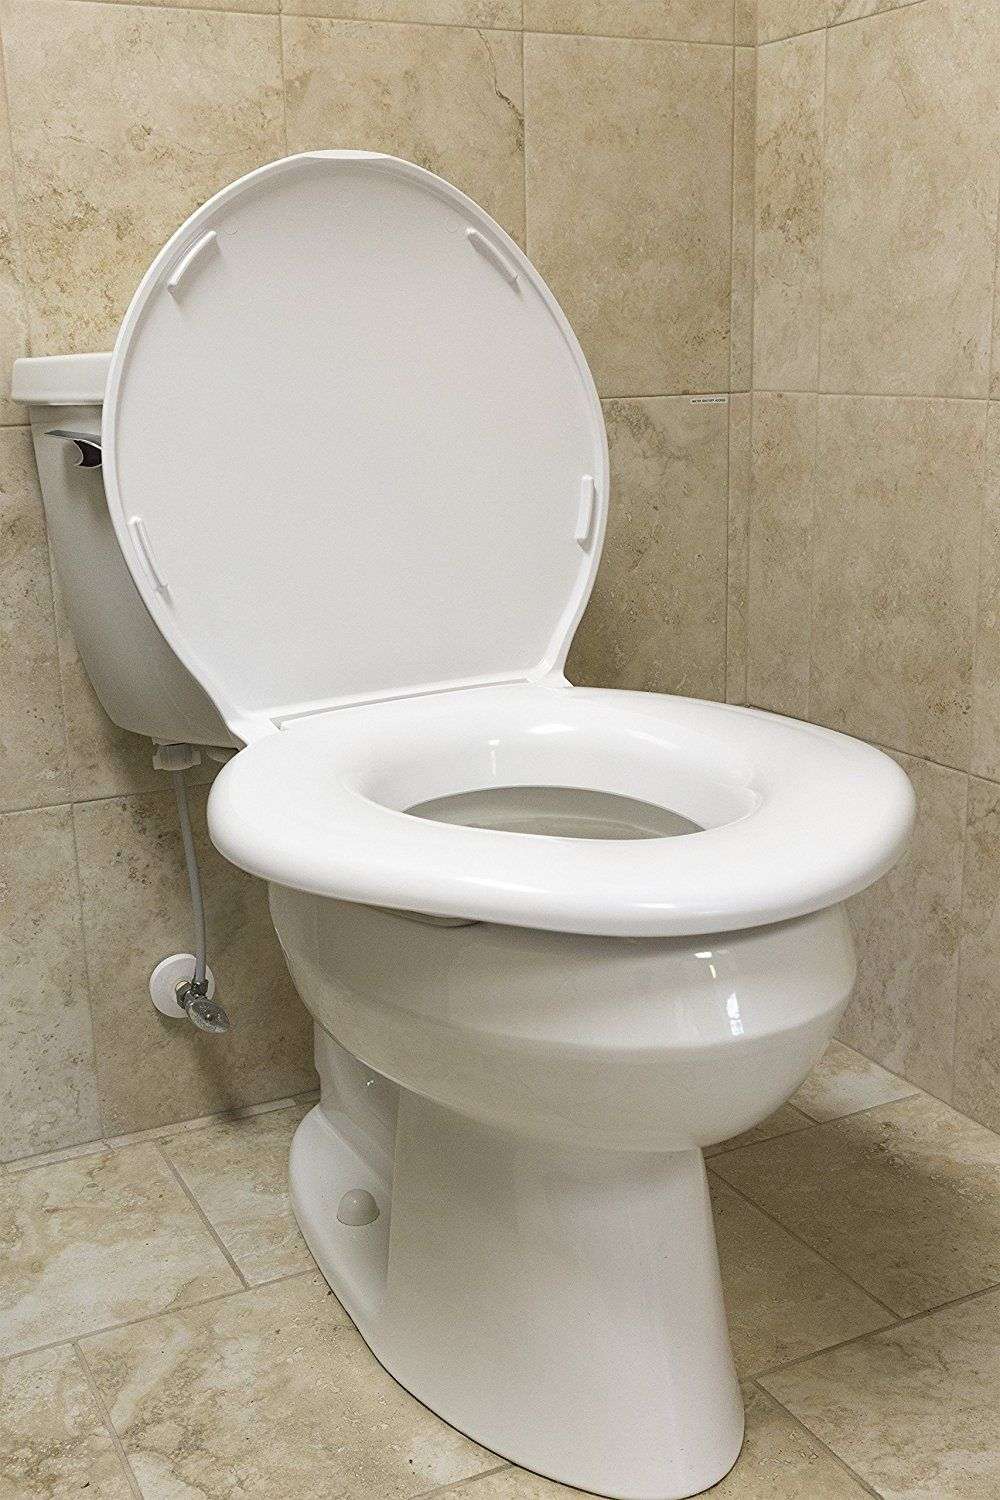 Stupendous Big John 1 W Oversized Toilet Seat With Cover And Stainless Machost Co Dining Chair Design Ideas Machostcouk